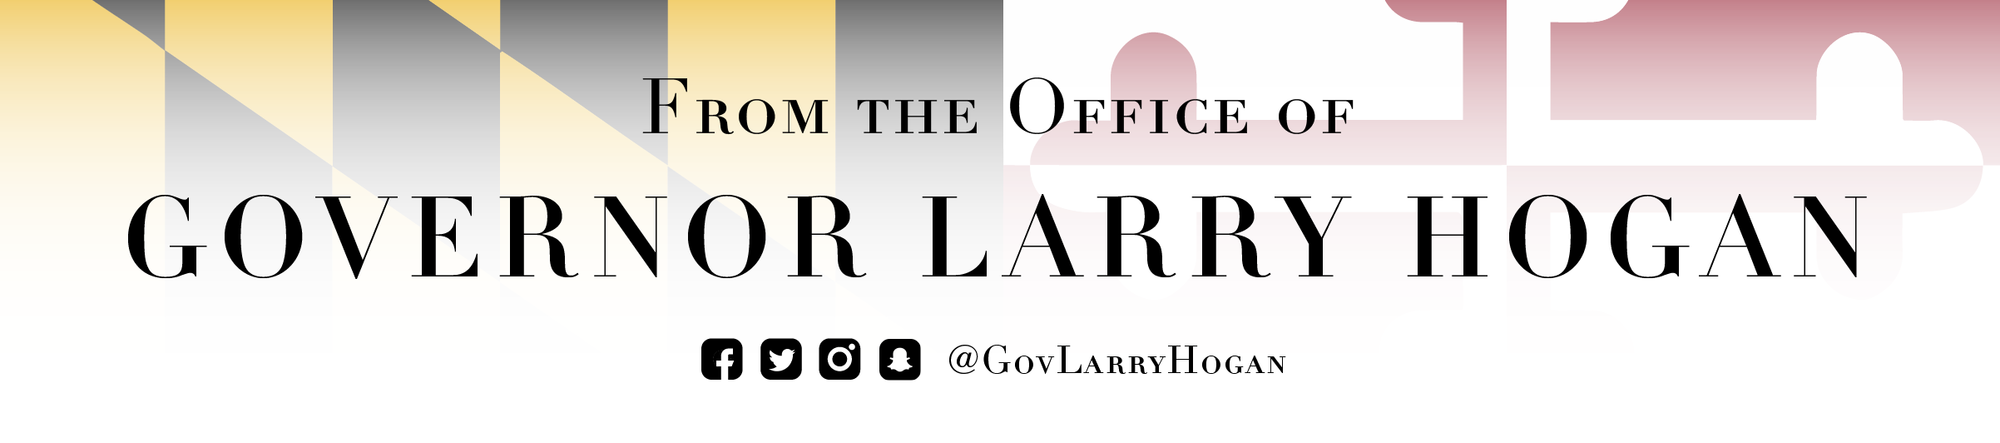 From the Office of Governor Larry Hogan